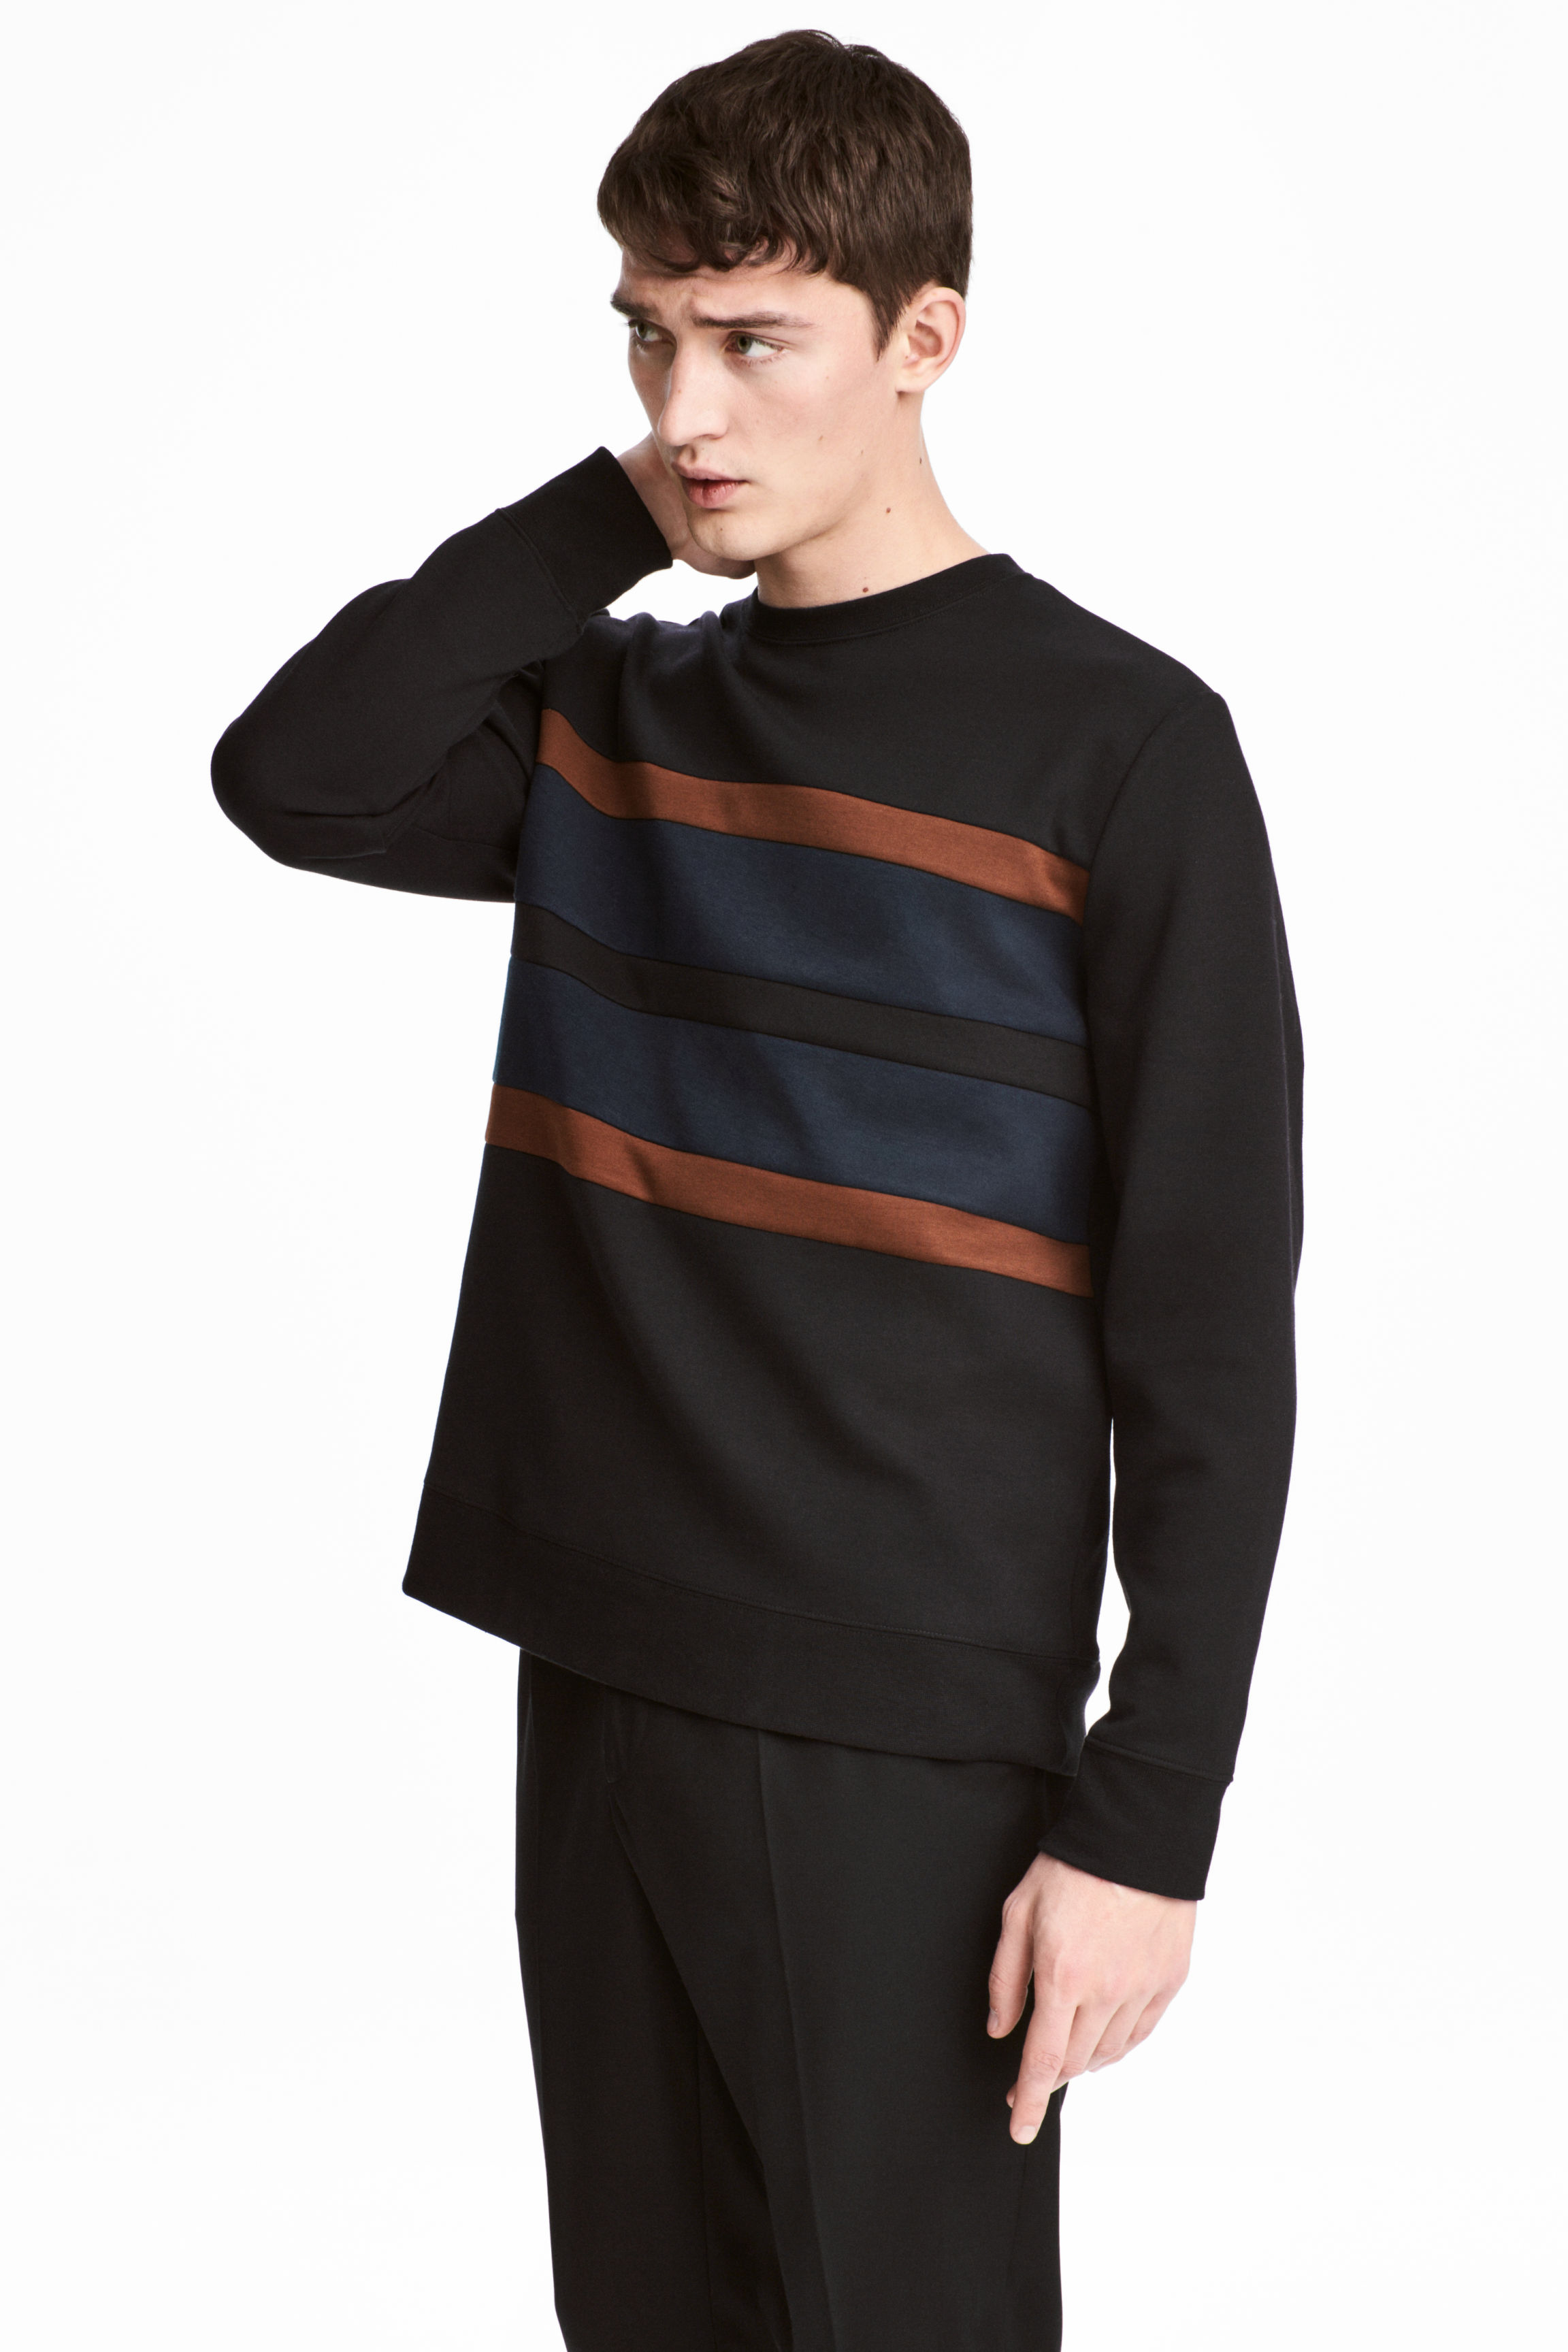 H&M Block Striped Sweatshirt $14.99.jpeg